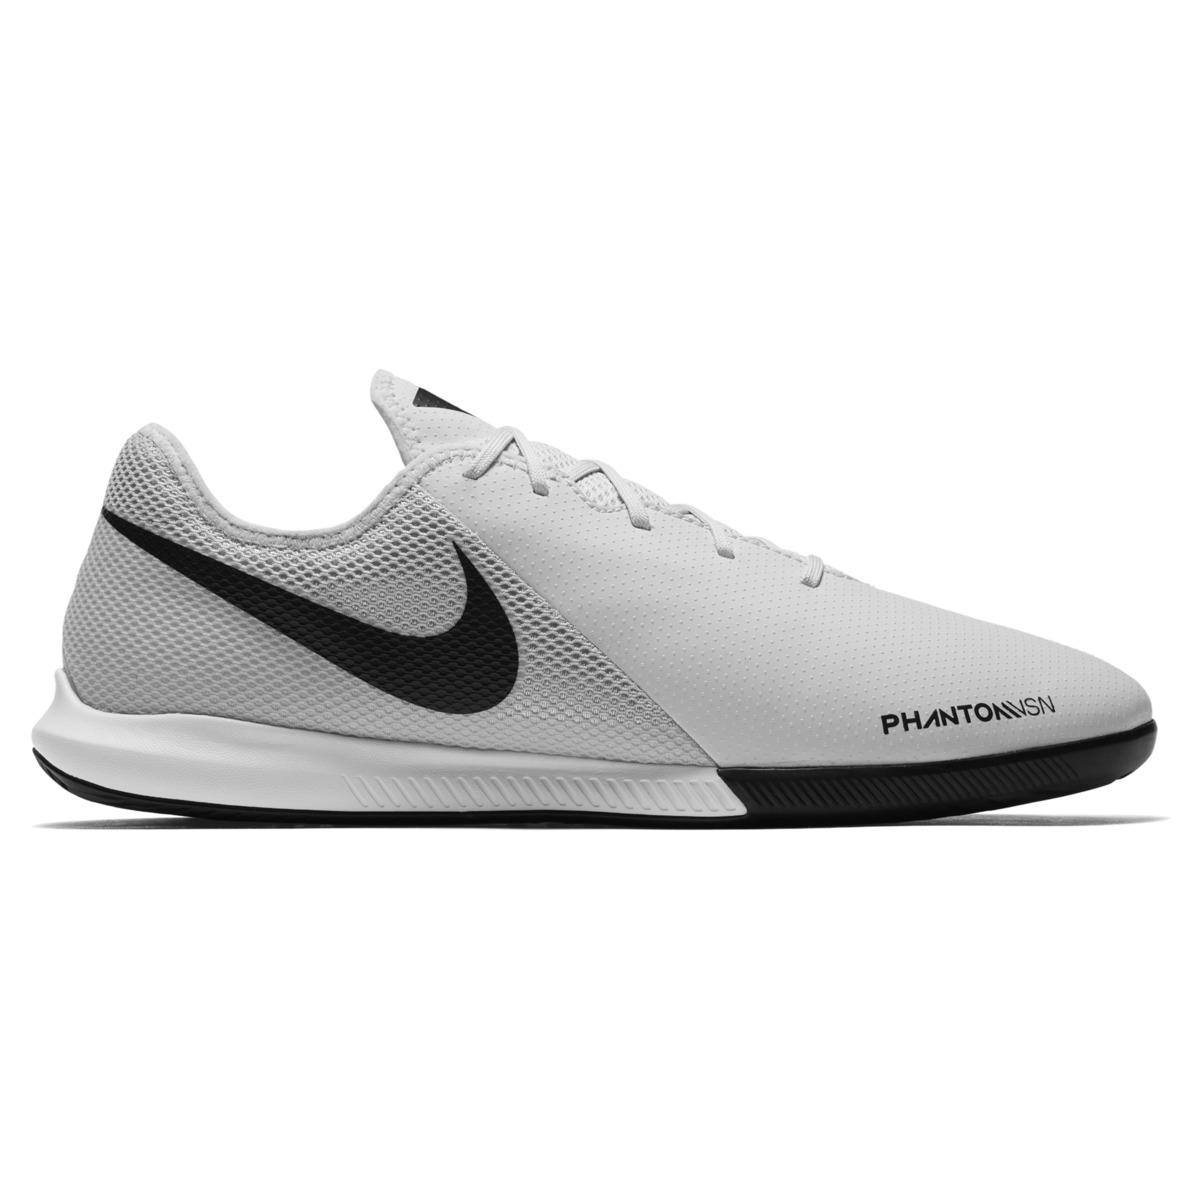 separation shoes cf3c3 222f8 Nike Phantom Vision Academy Dynamic Fit Ic Indoor Football Boots in ...